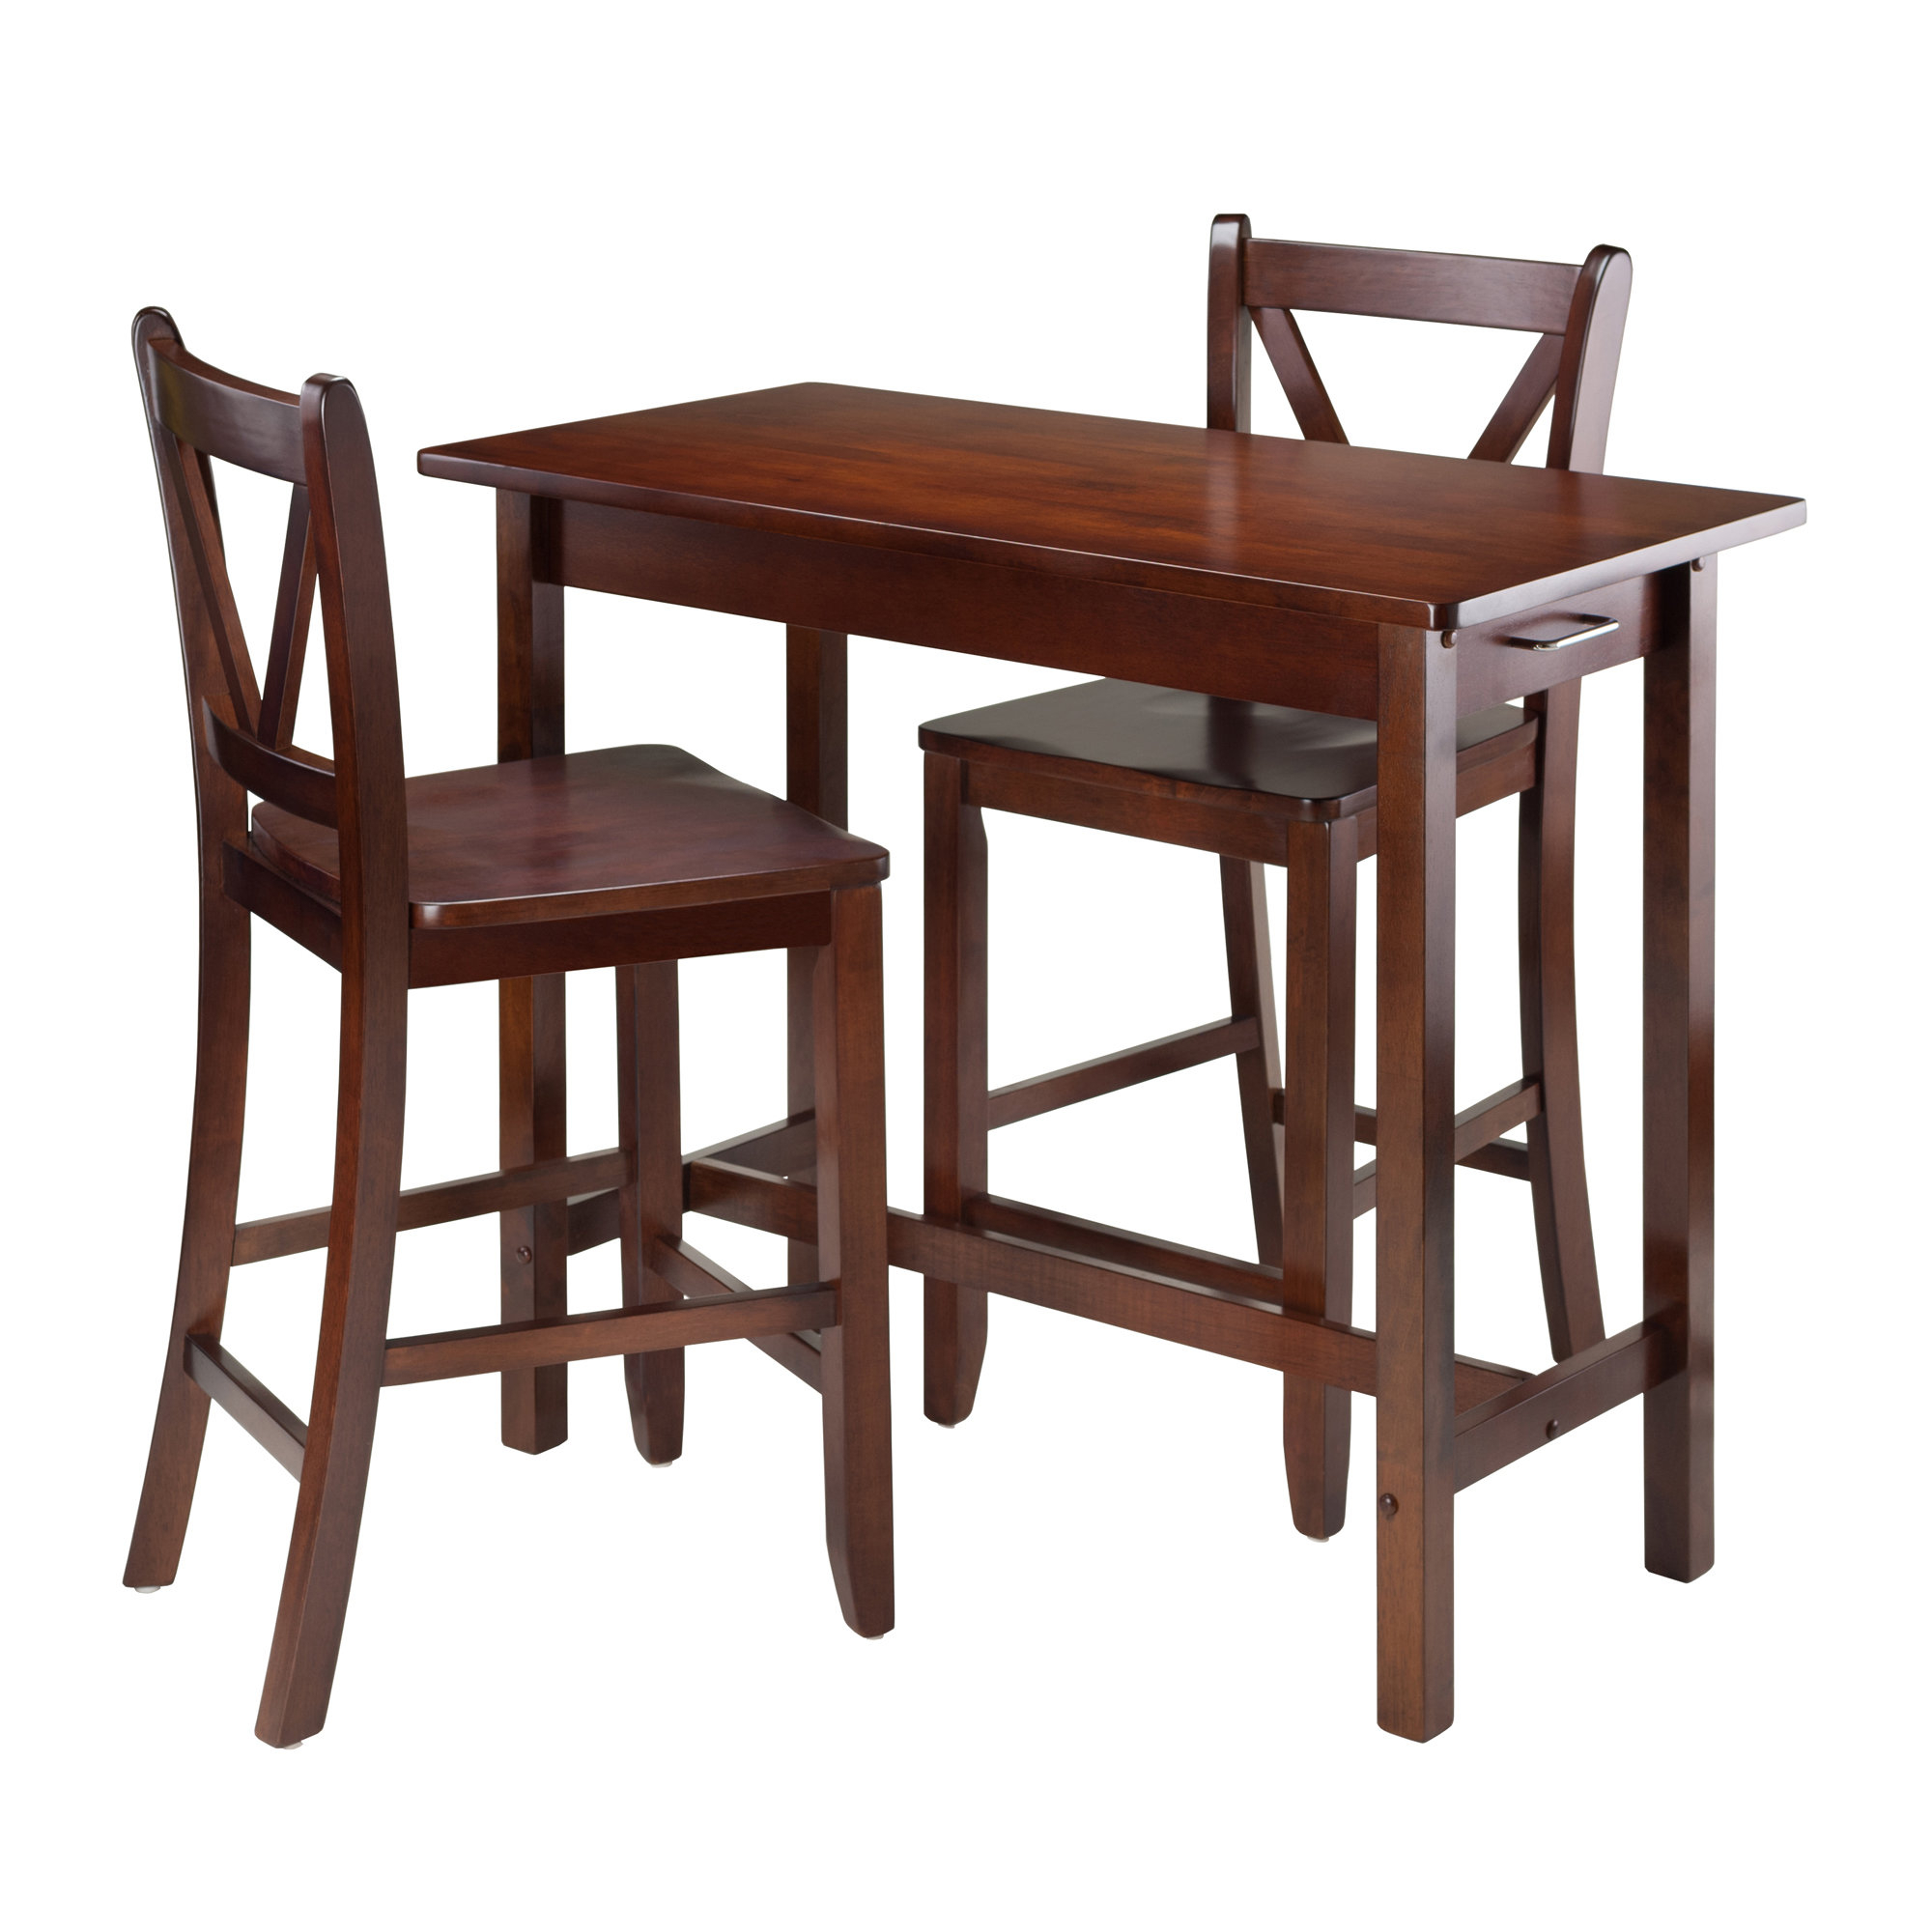 Winsome 3 Piece Counter Height Dining Sets With Regard To Popular Winsome Kitchen Island 3 Piece Counter Height Dining Set & Reviews (View 4 of 20)